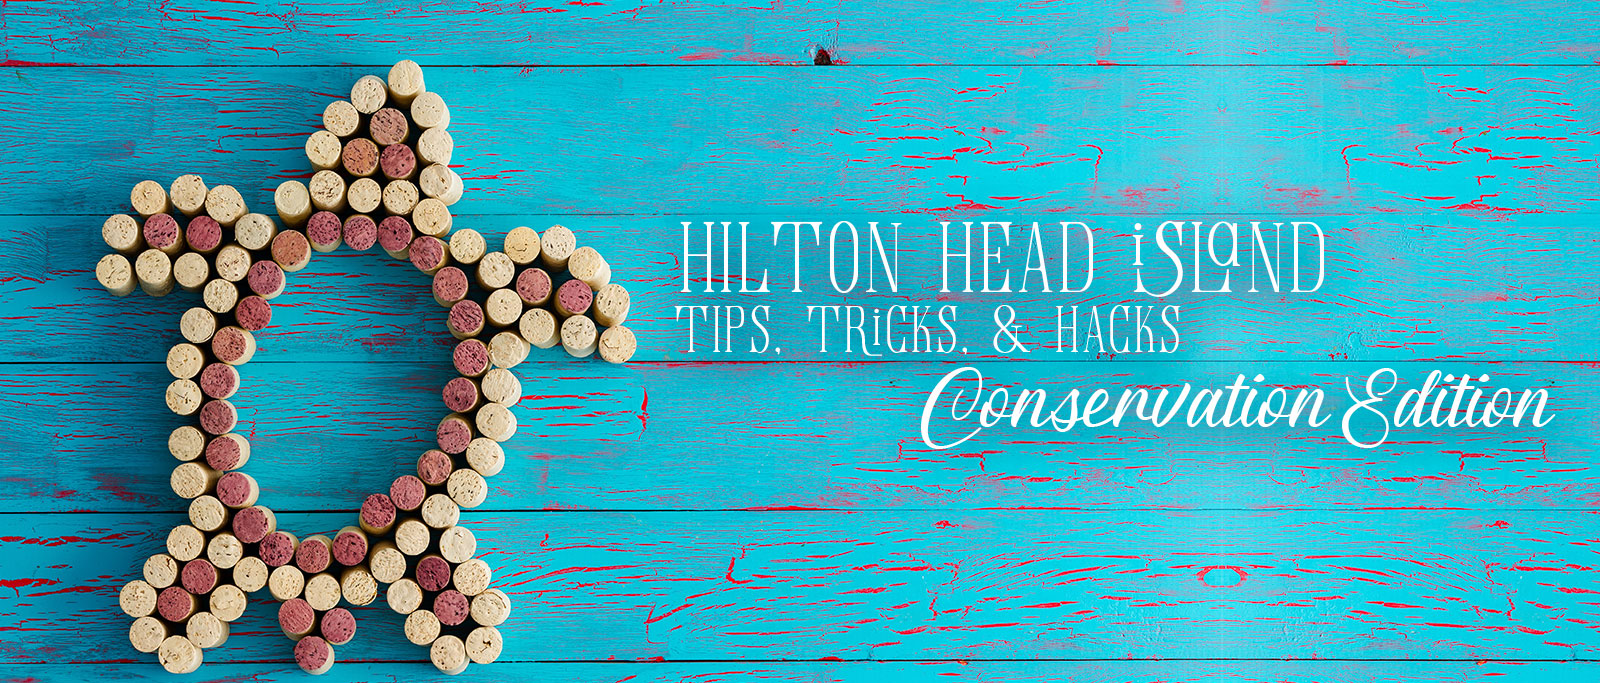 hilton-head-islandcast-episode-29-conservation-edition